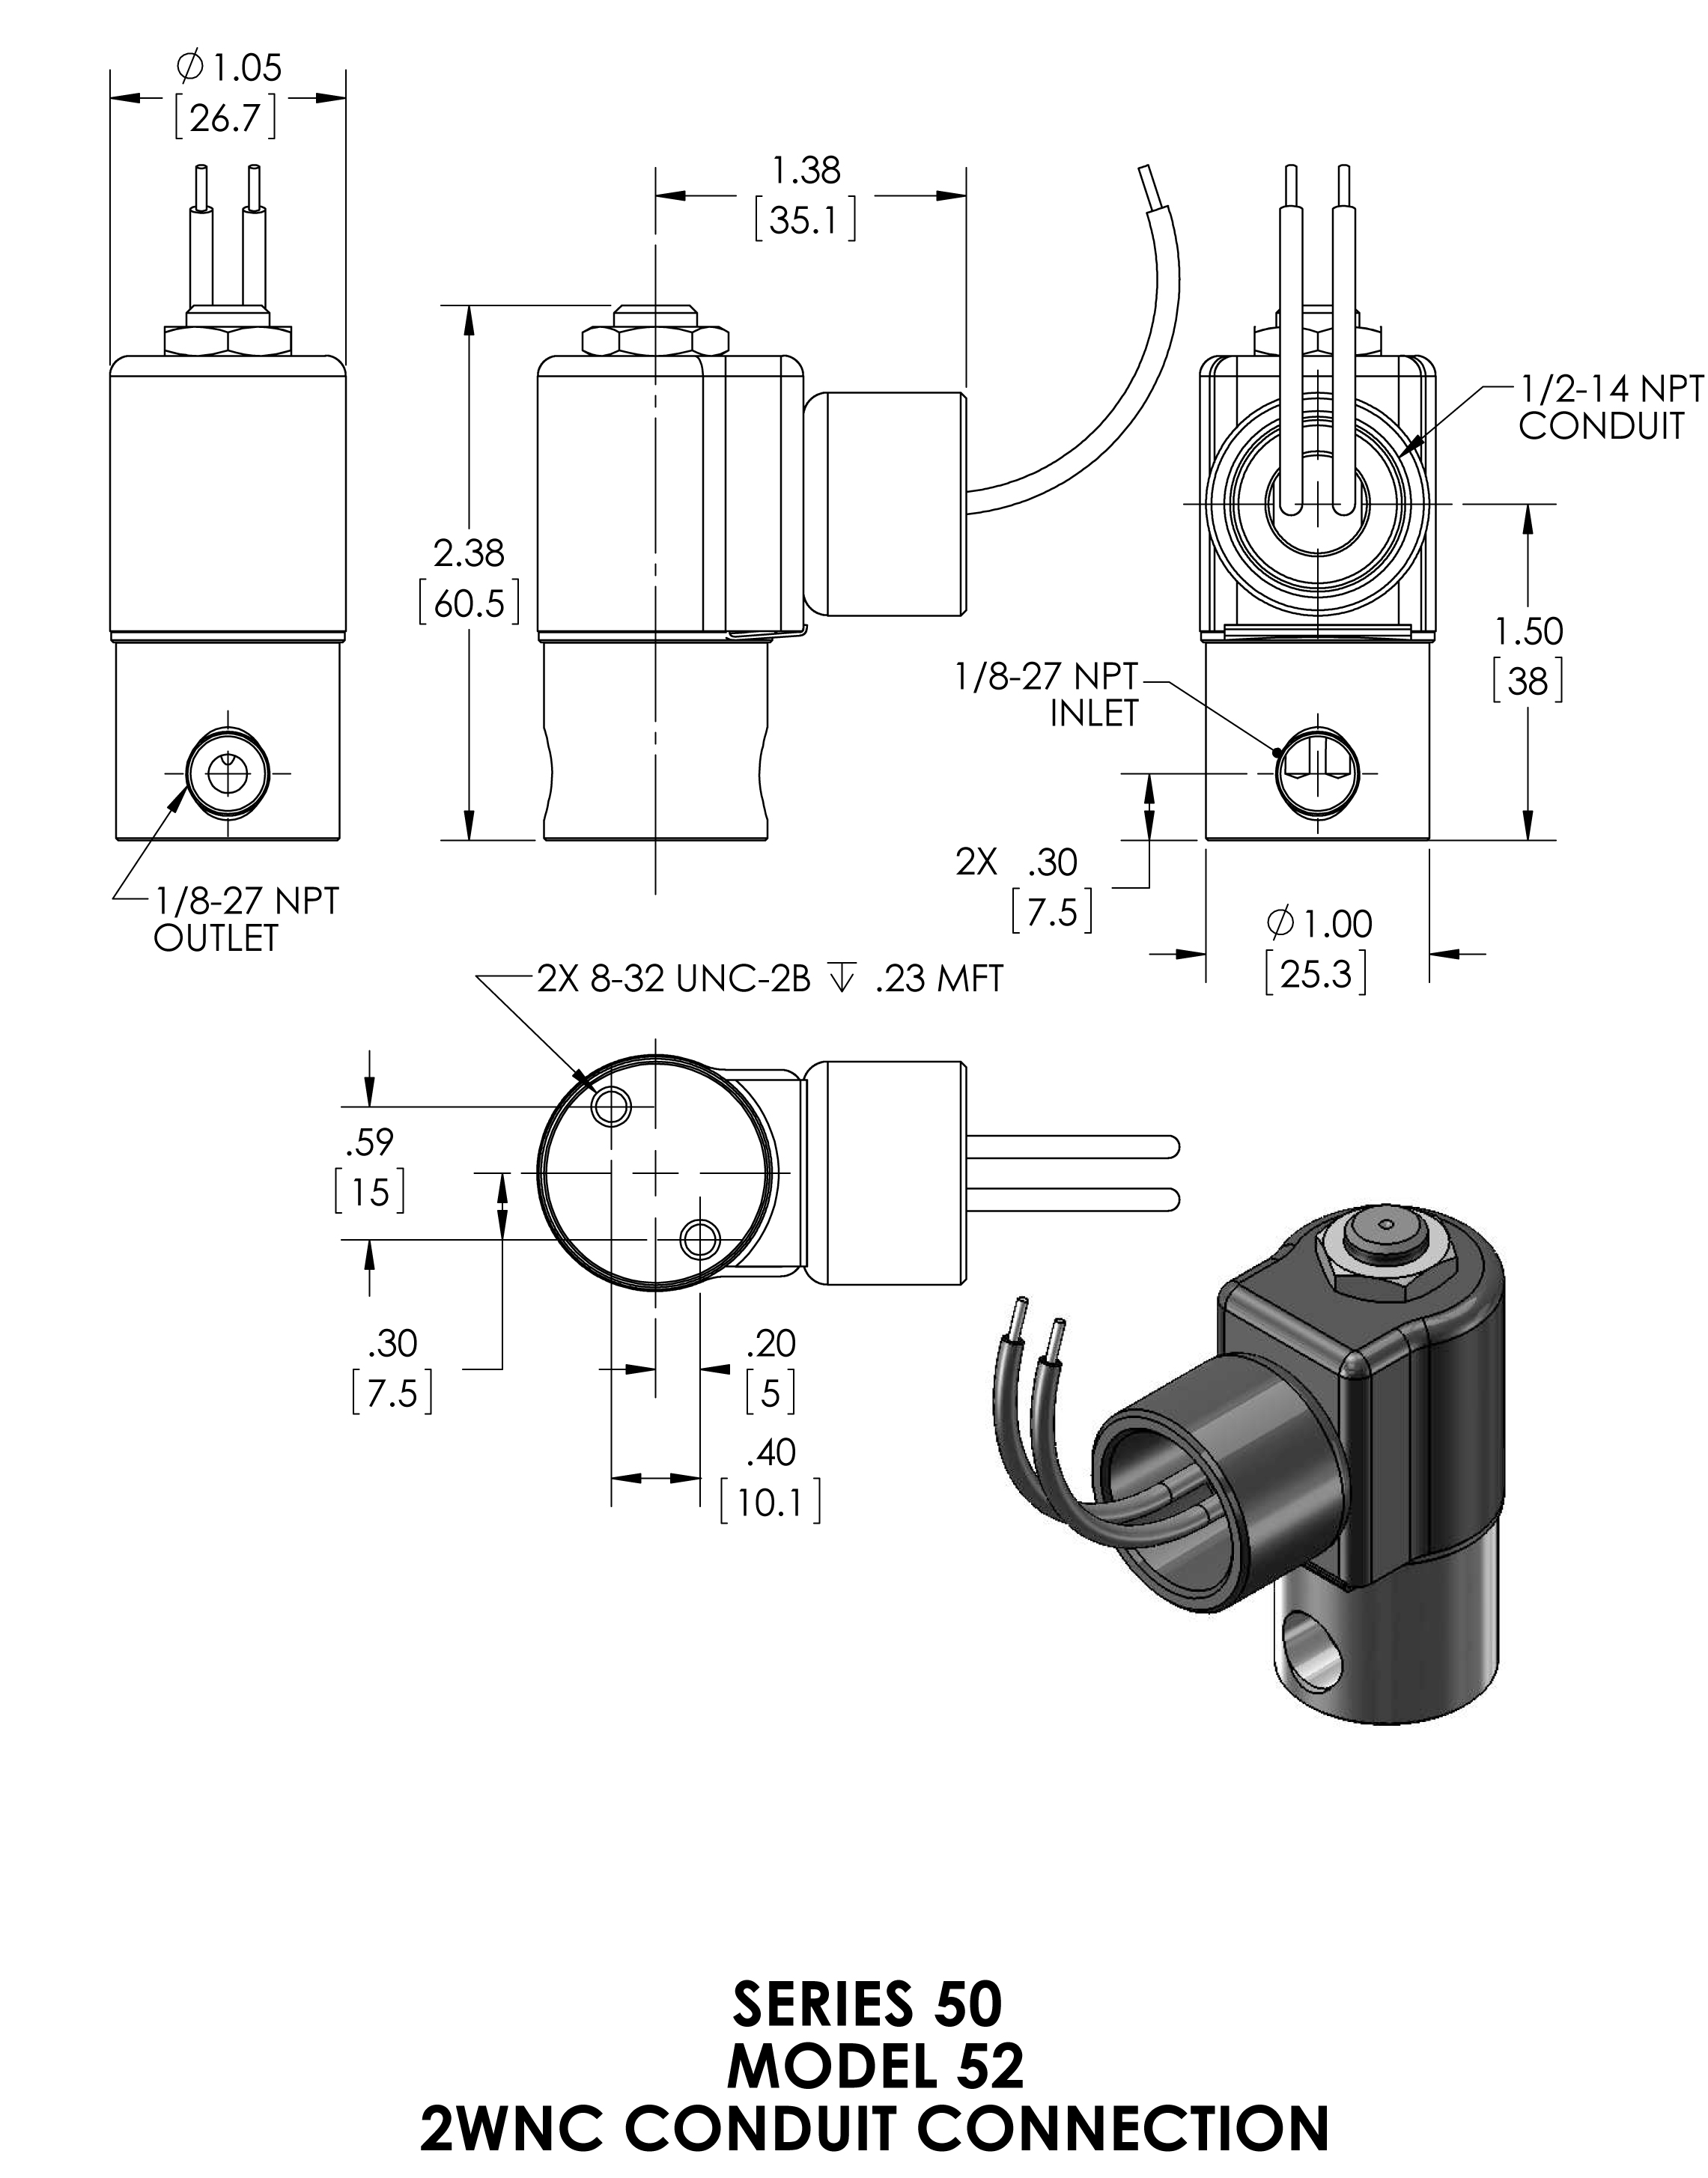 52g8dcb Peter Paul 2 Way Normally Closed Solenoid Valve 1